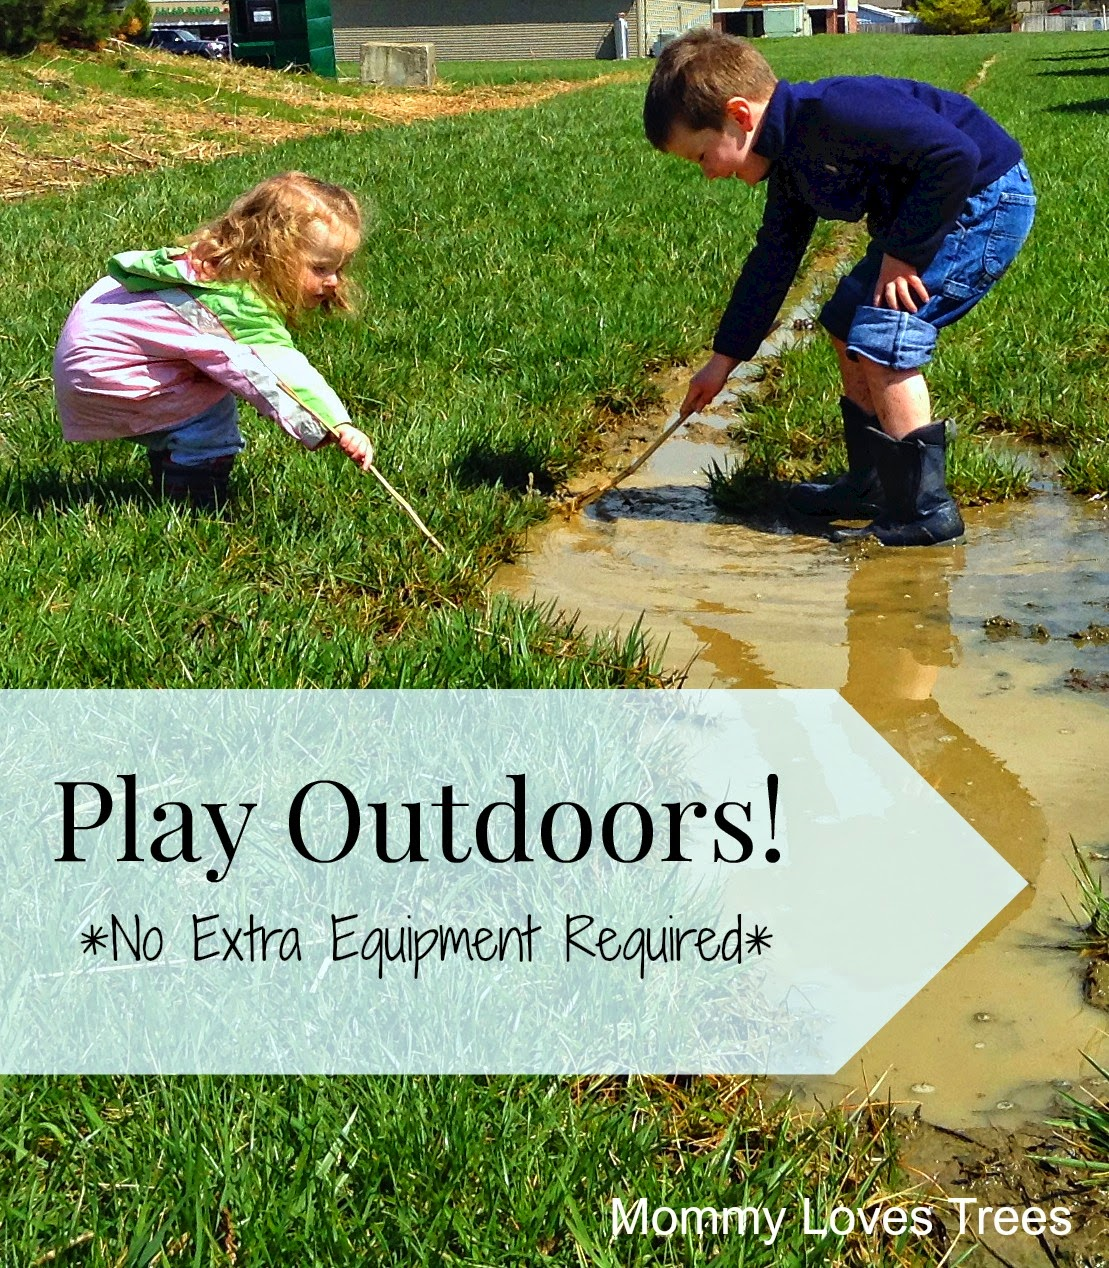 Encouraging creativity & independence in kids - play outdoors.